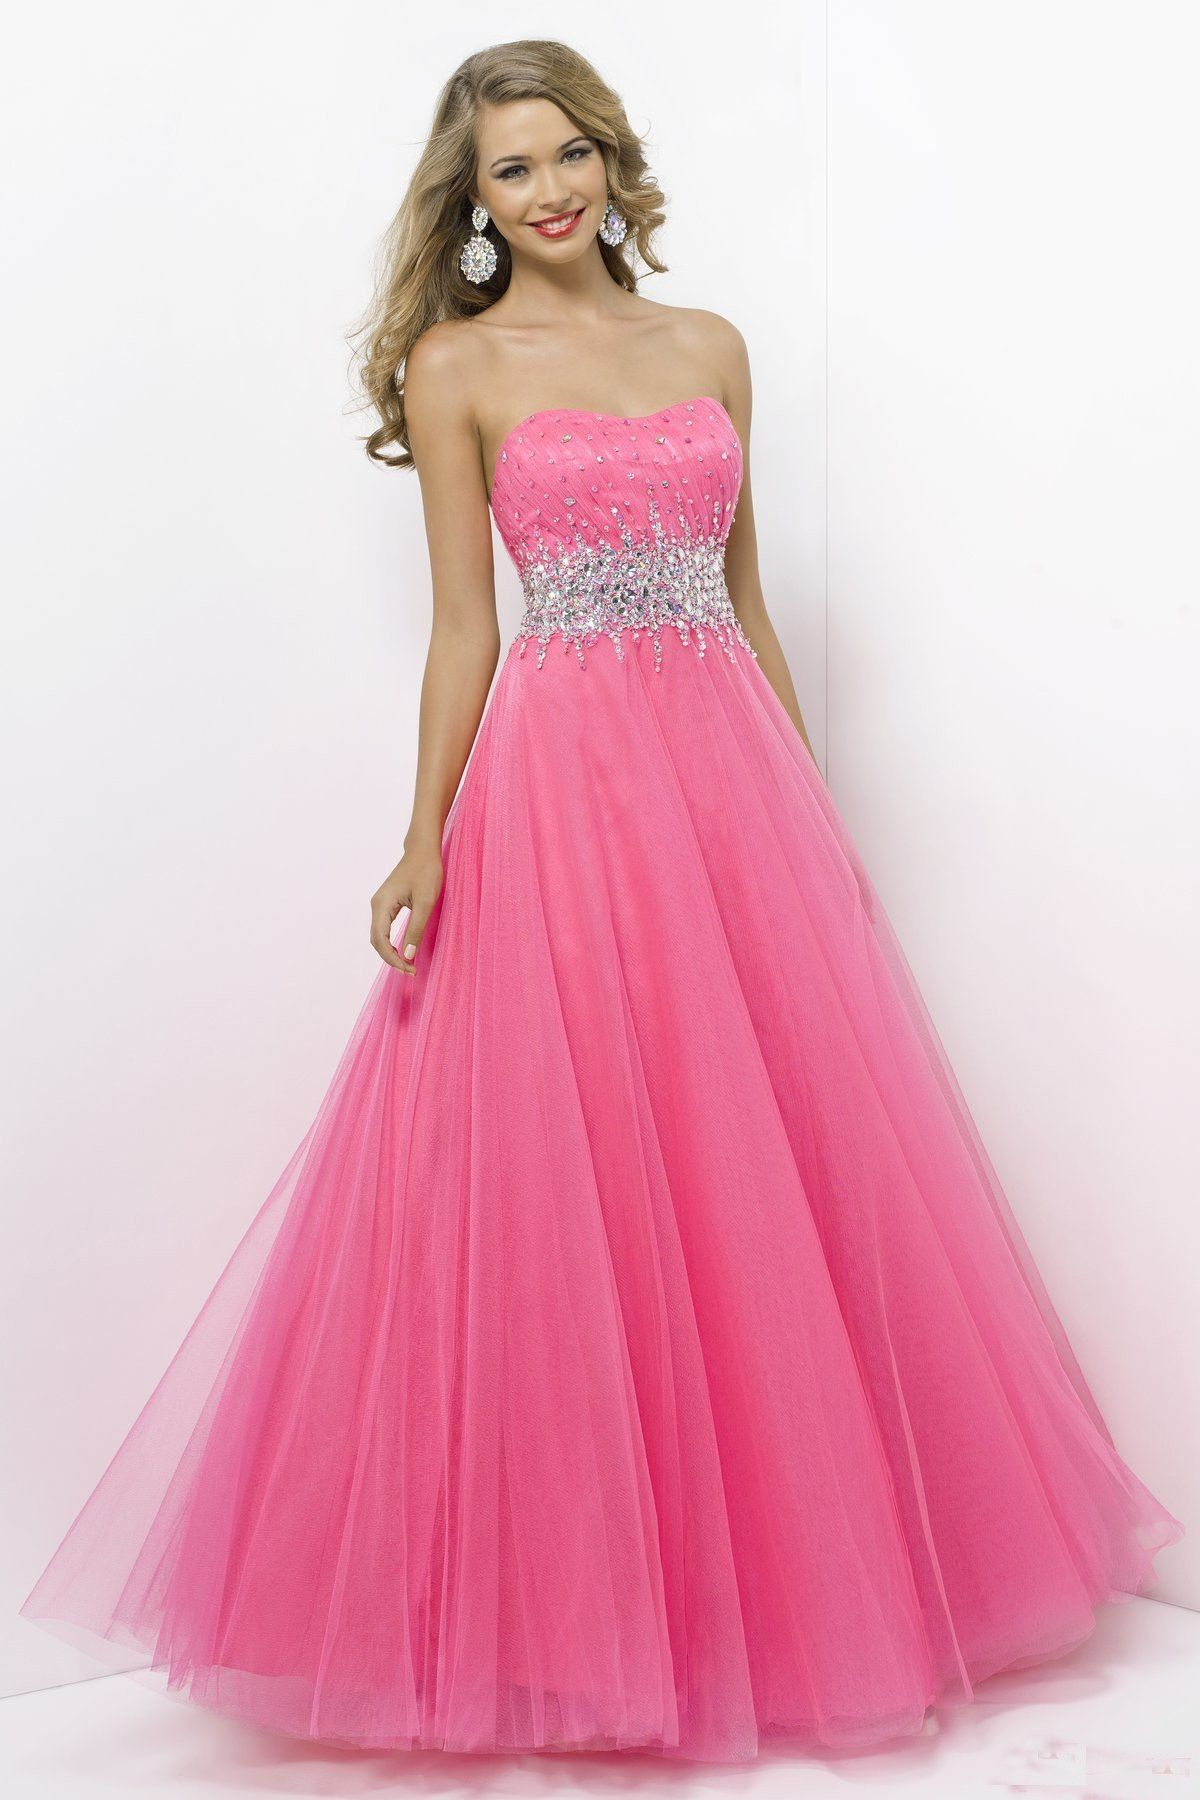 TBdress Prom Dresses Archives | Dulces 15, Color rosa y Clasicos